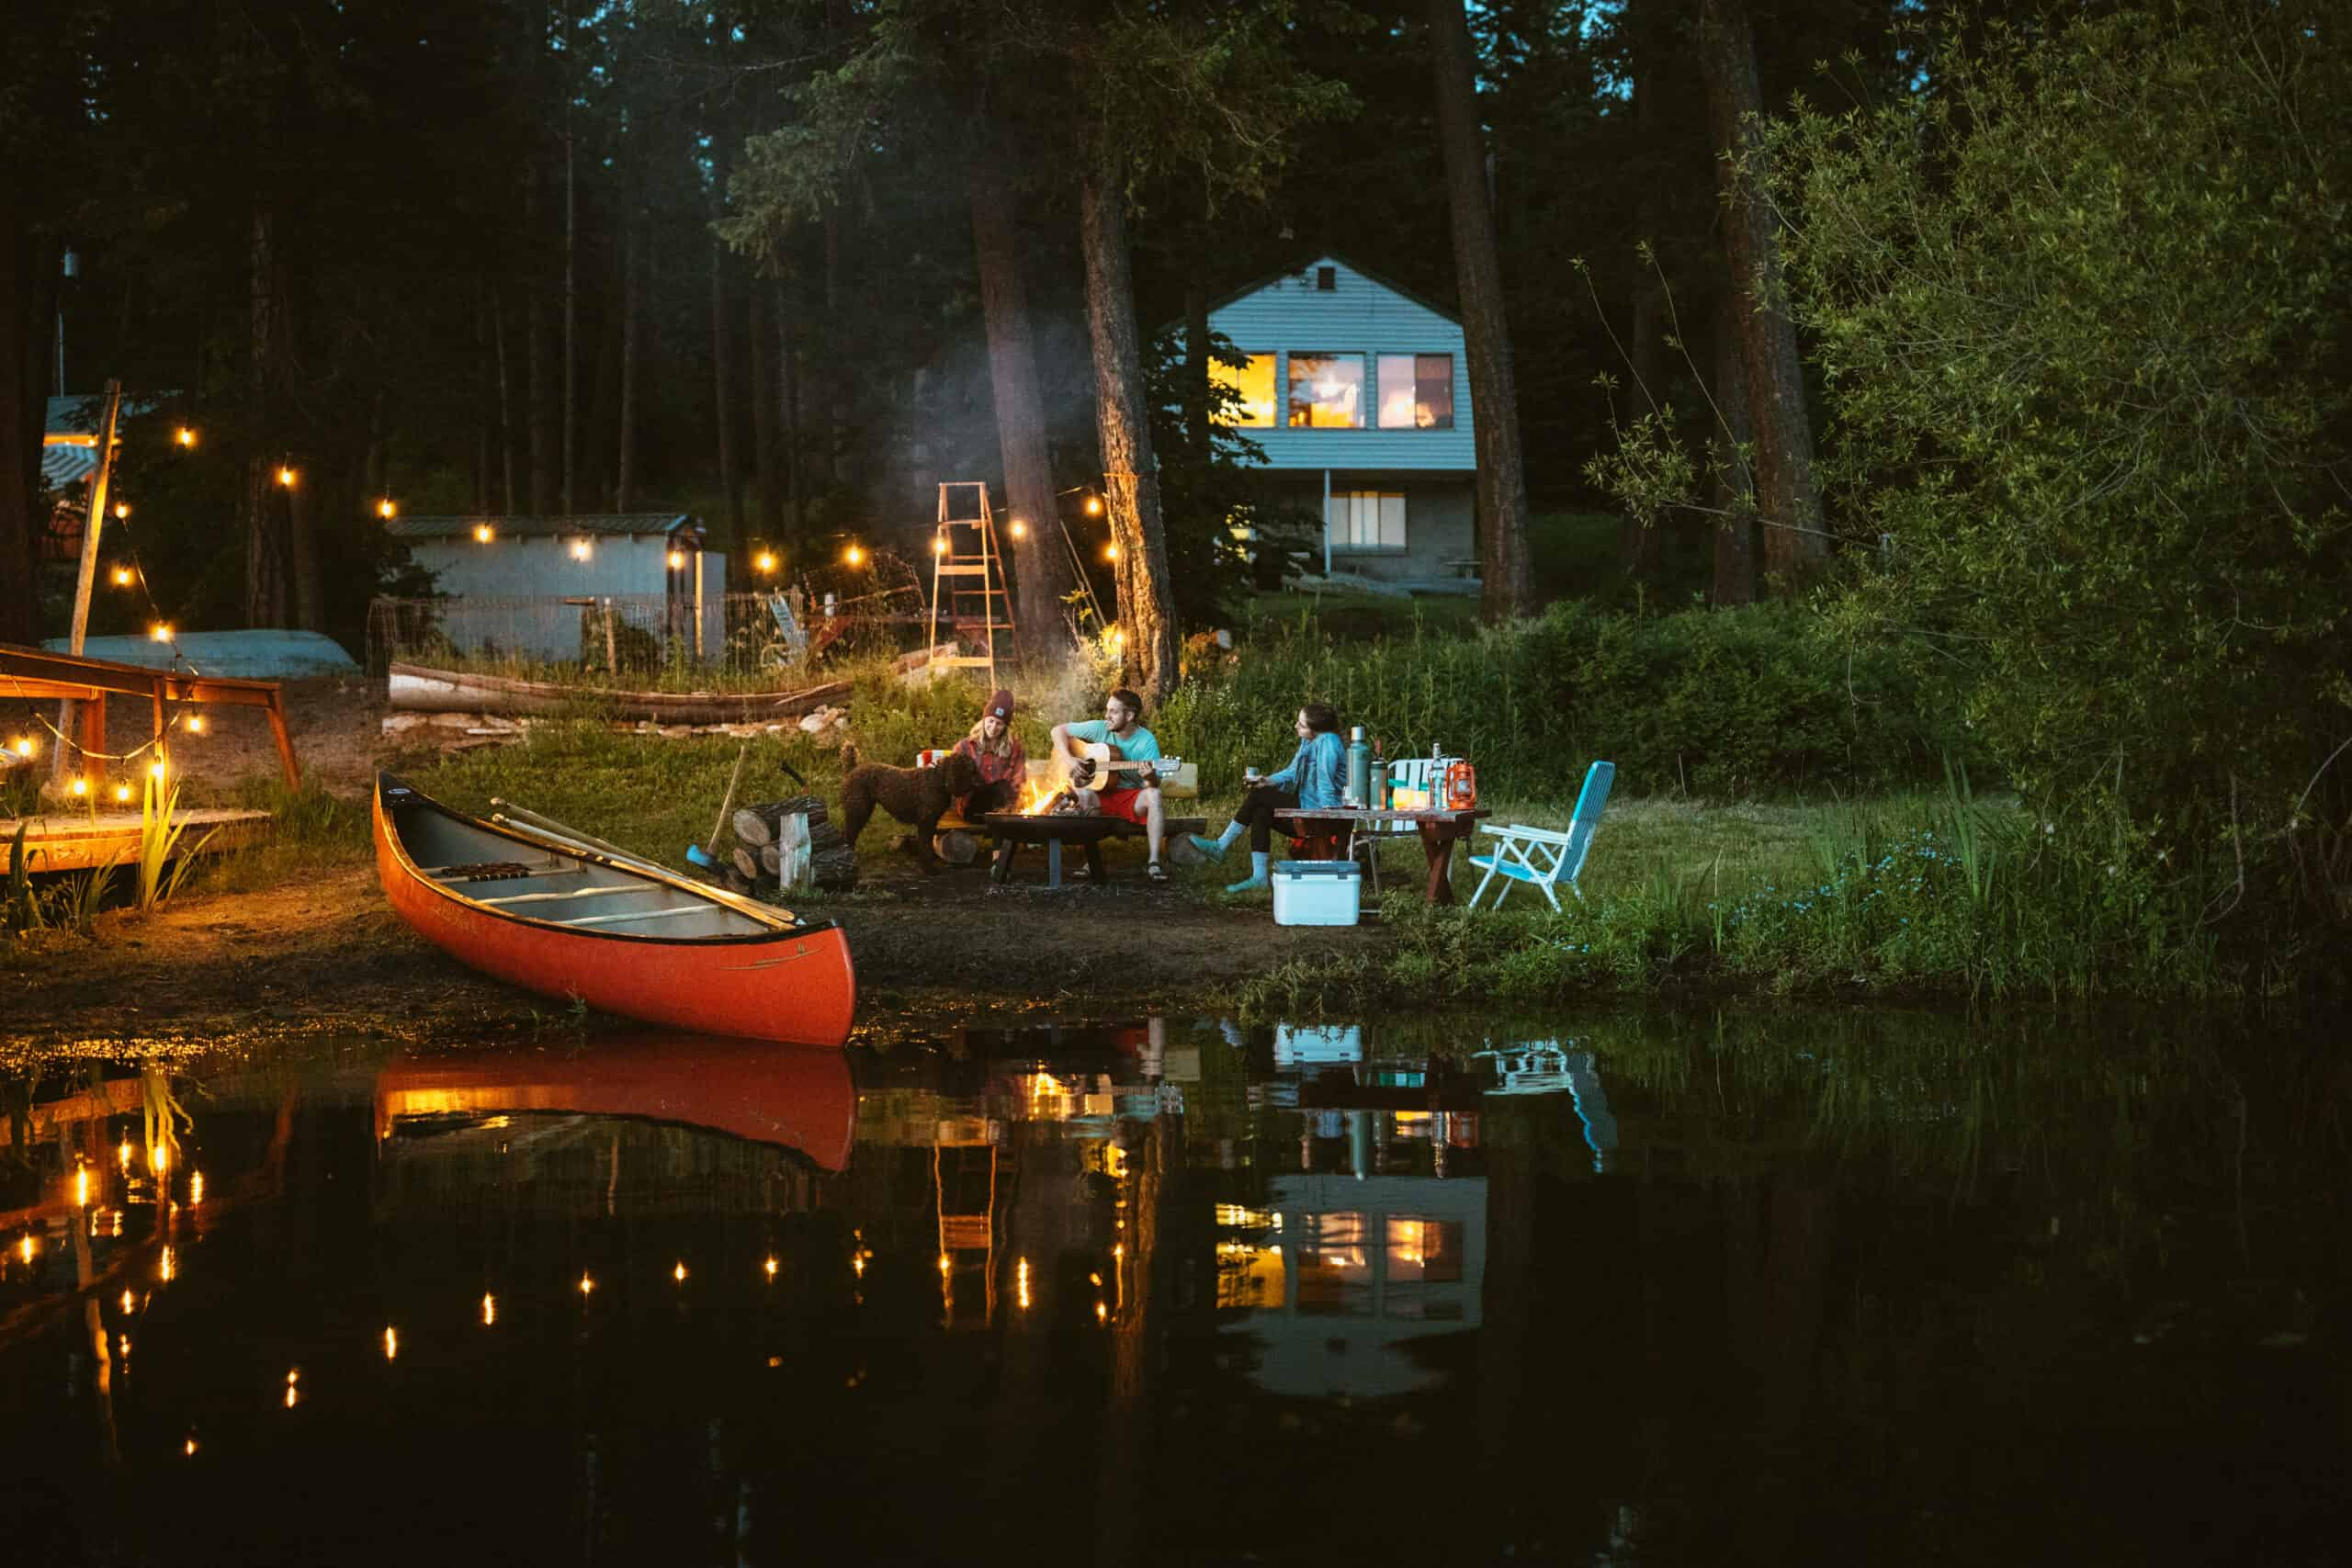 How To Plan The Perfect Low-Key Lake Weekend This Summer